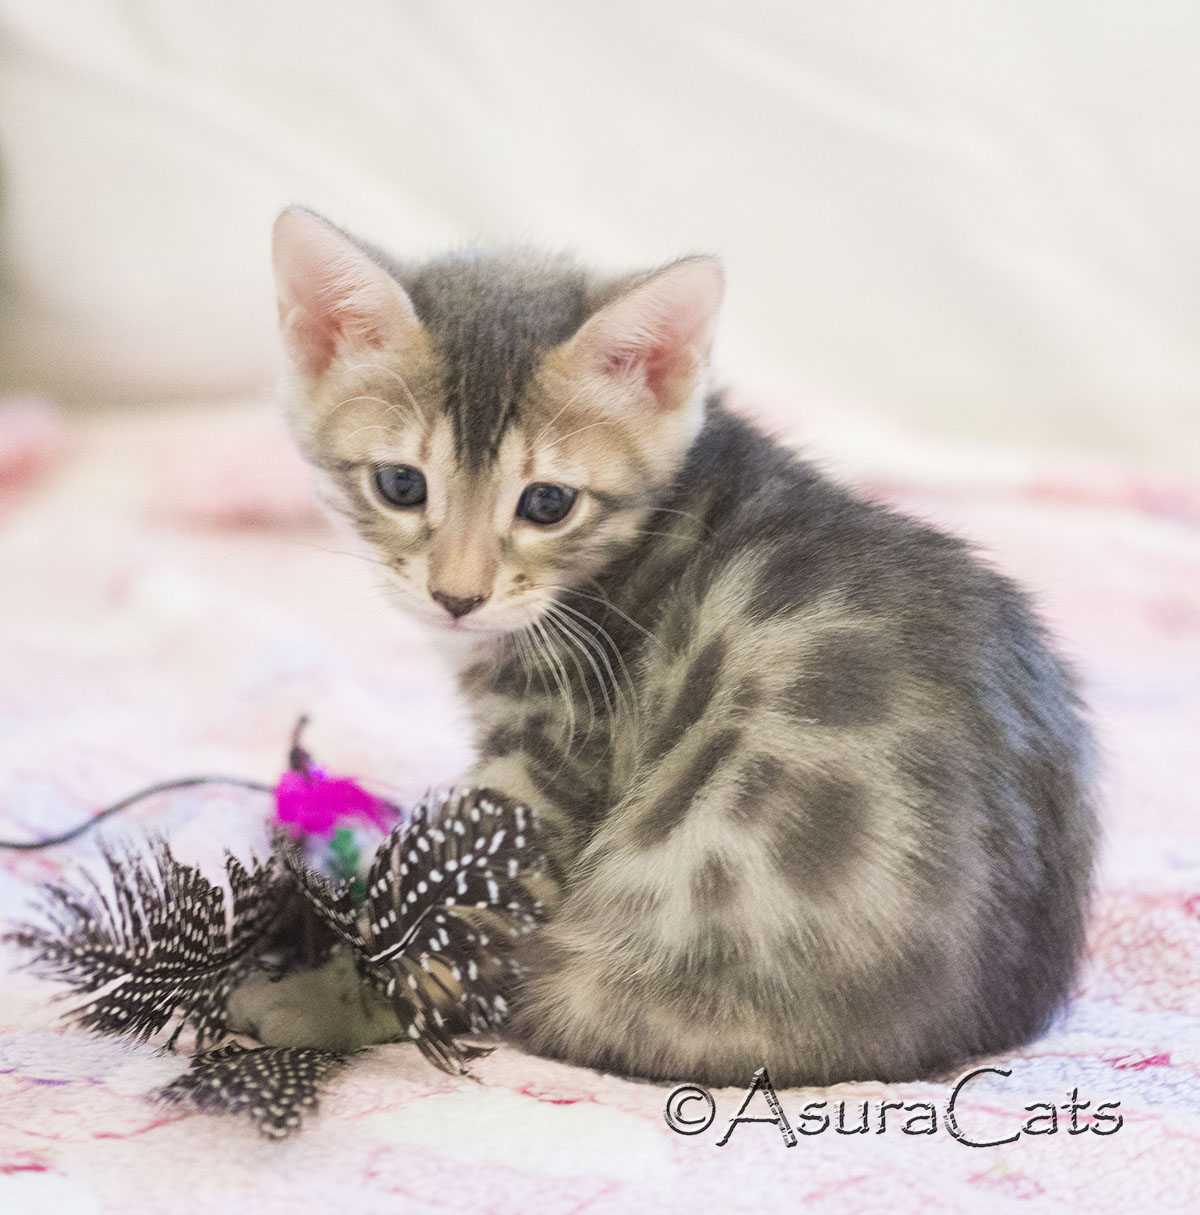 AsuraCats Zecora - Blue spotted female Bengal kitten